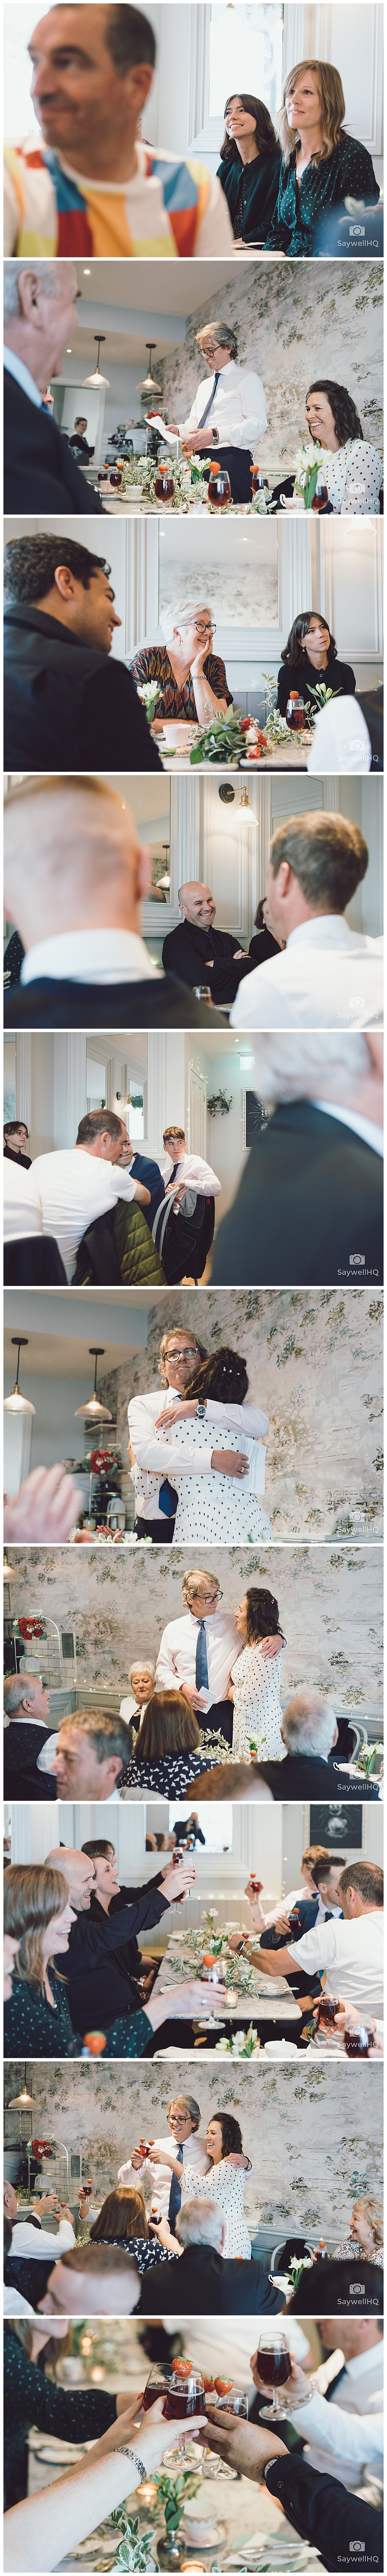 West Bridgford Wedding Photography - white rabbit tea room in west bridgford - groom gives a small speech